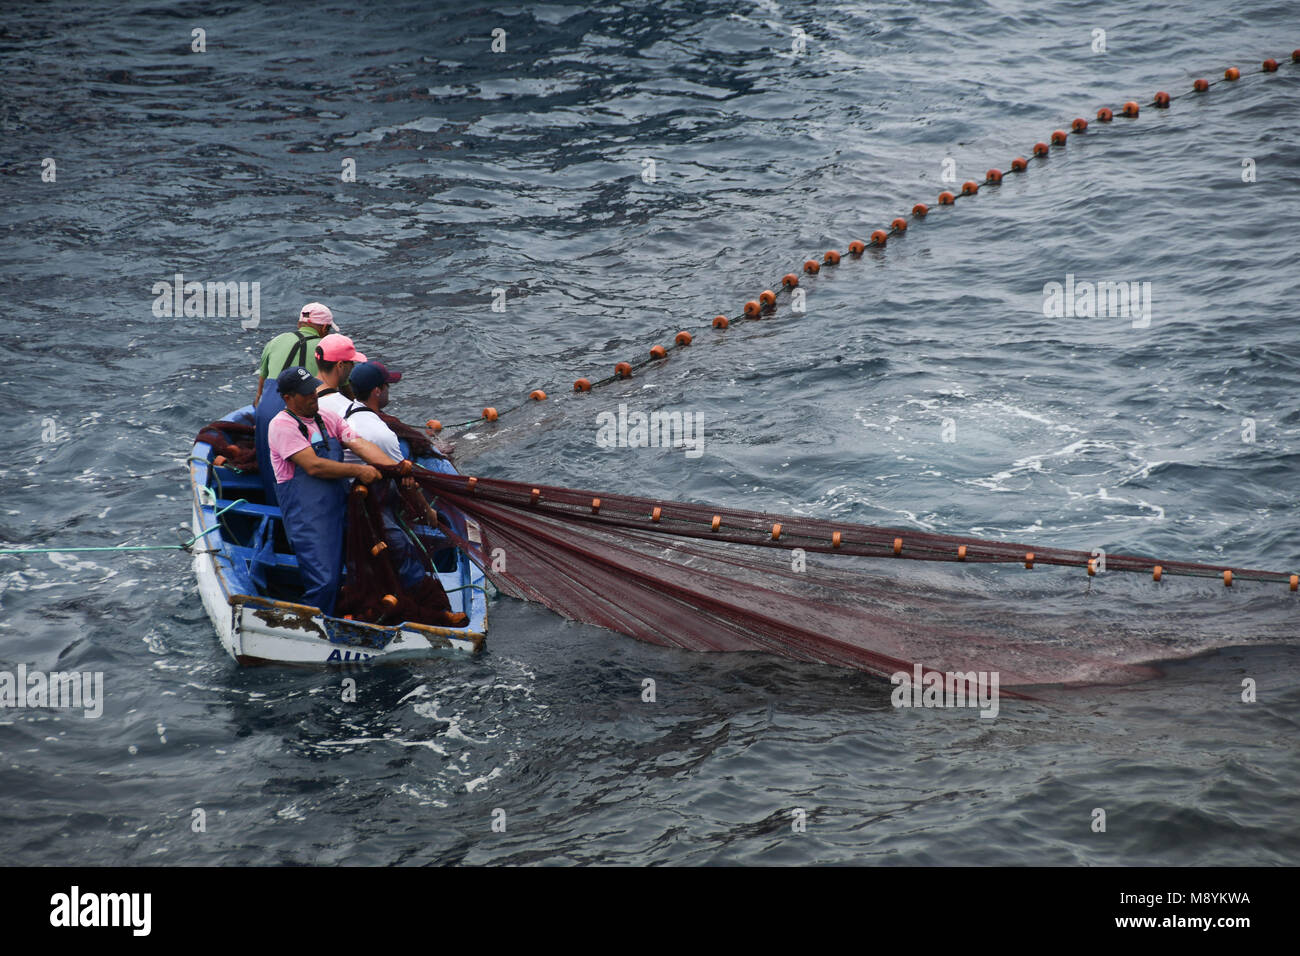 Fisherman in a small boat hauling in their net - Stock Image